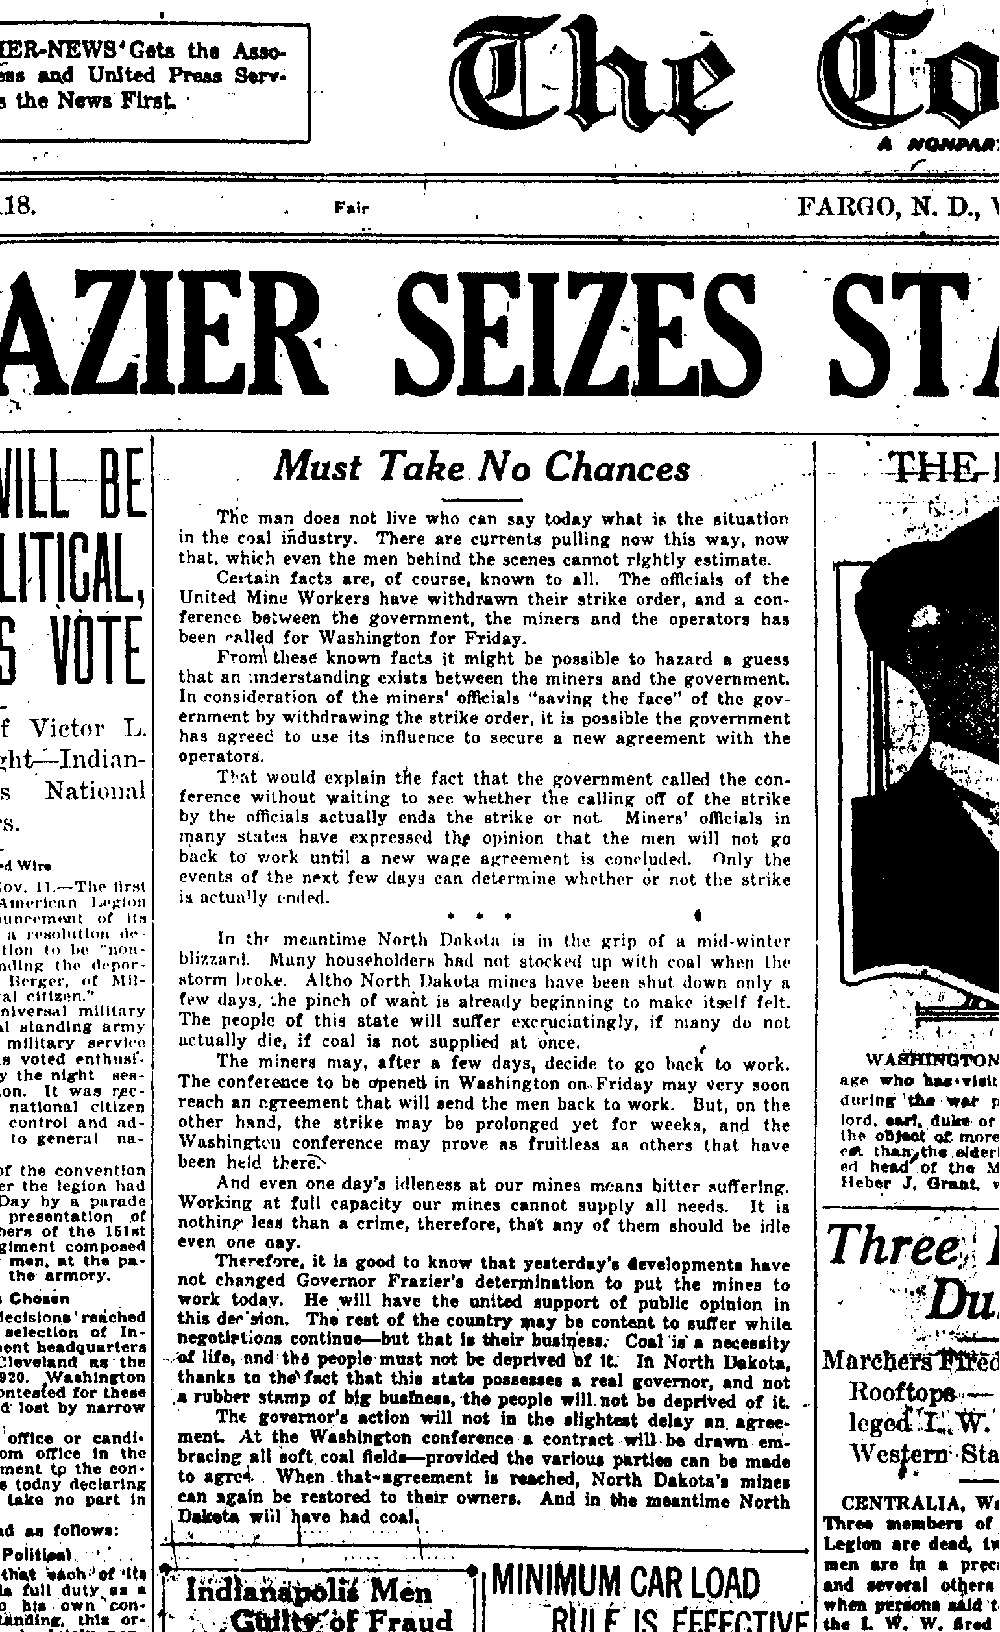 When the mines were closed by the strike, Governor Frazier sent National Guard troops to re-open the mines.  The Fargo Courier News supported the governor's decision.